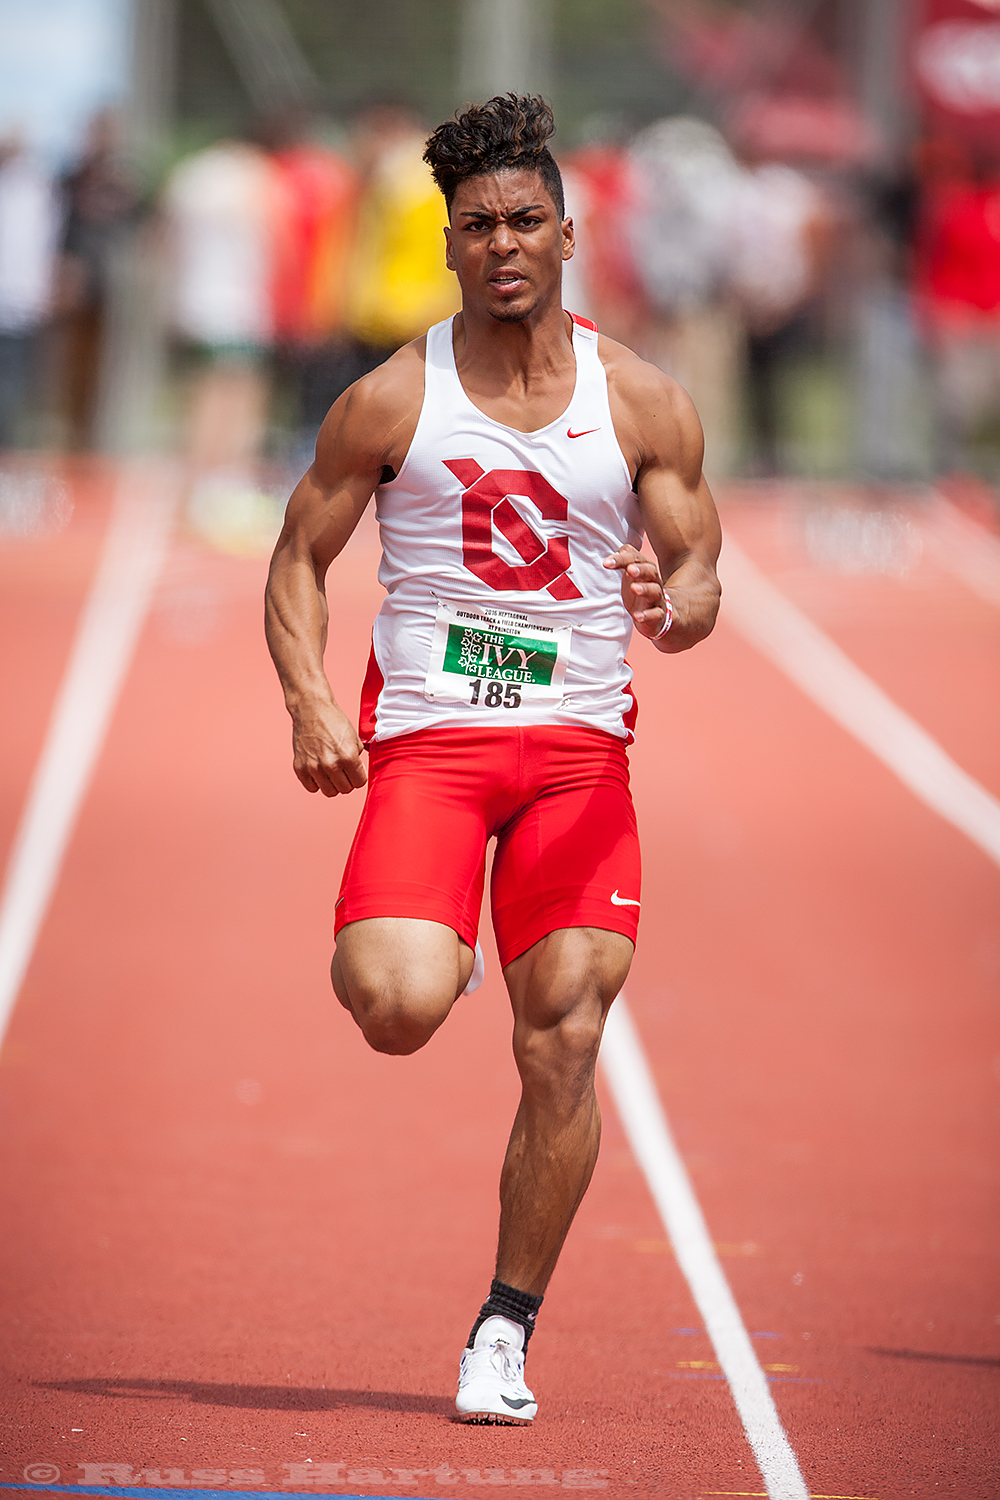 It's interesting seeing how different body types are natural fits for different events. The sprinters always have the best muscle definition for that explosive speed.